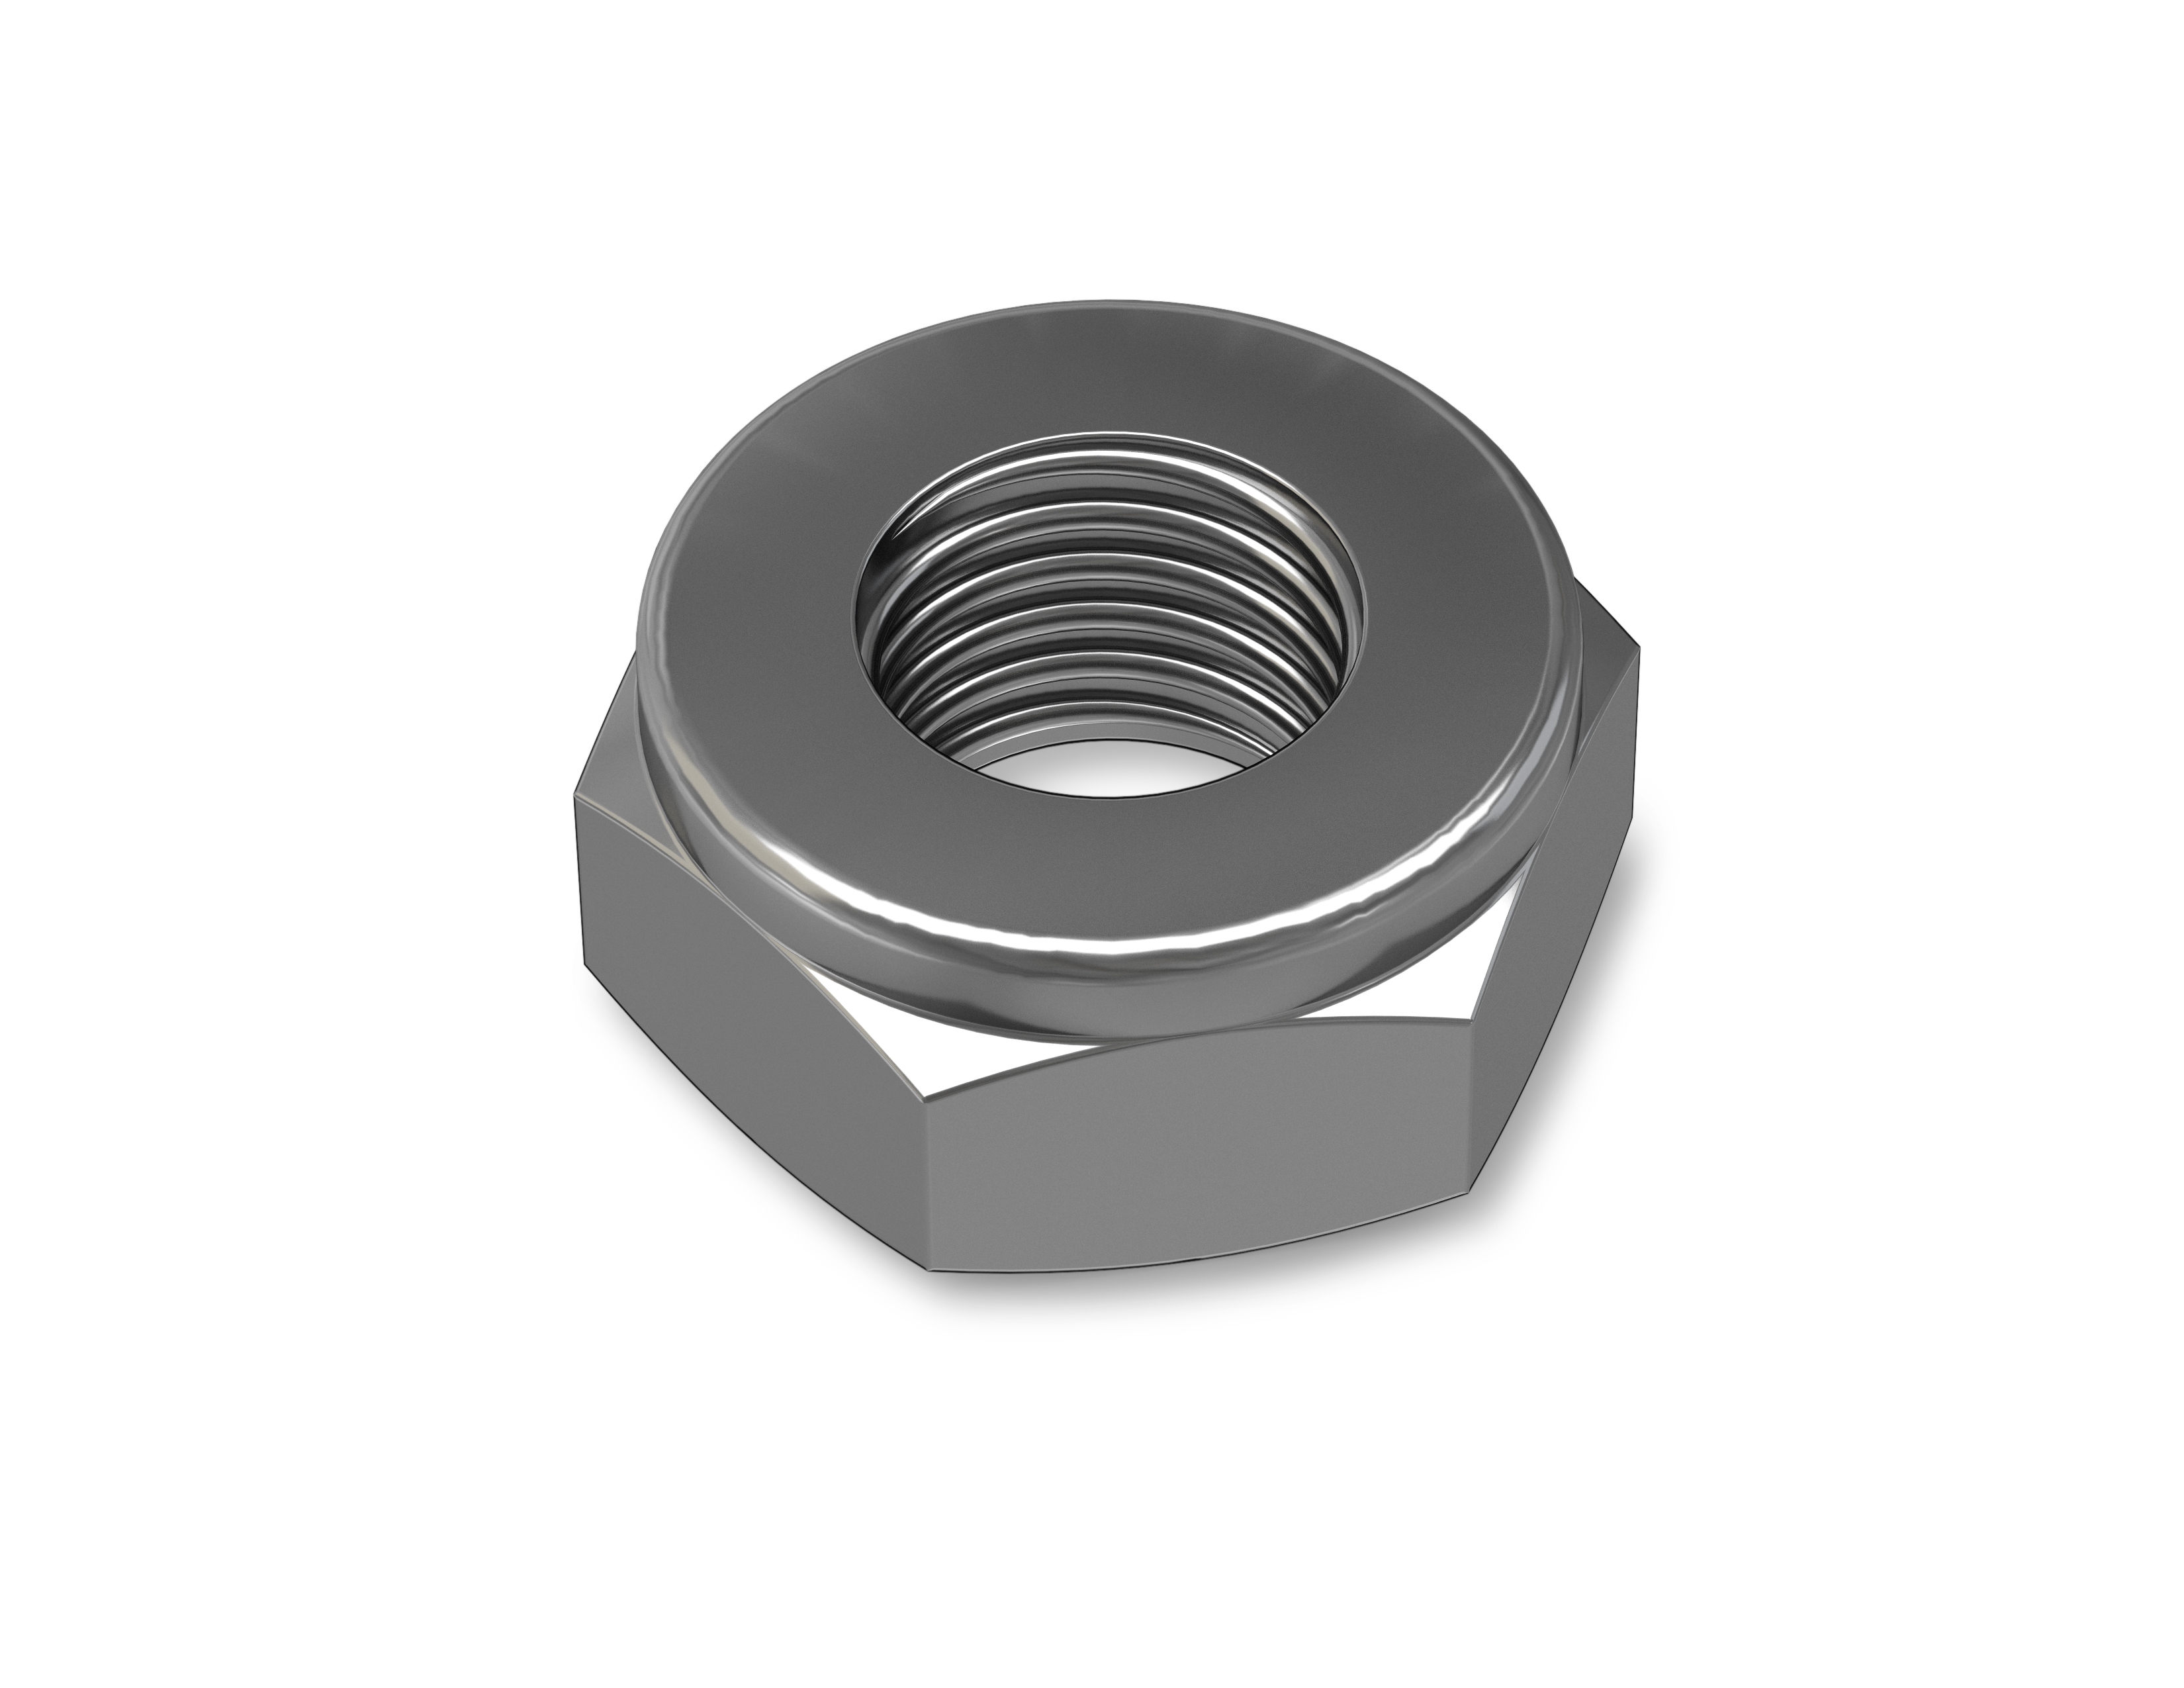 01754 Stainless Steel Hex Nut - M3 Thread x 0.09 in alt 1